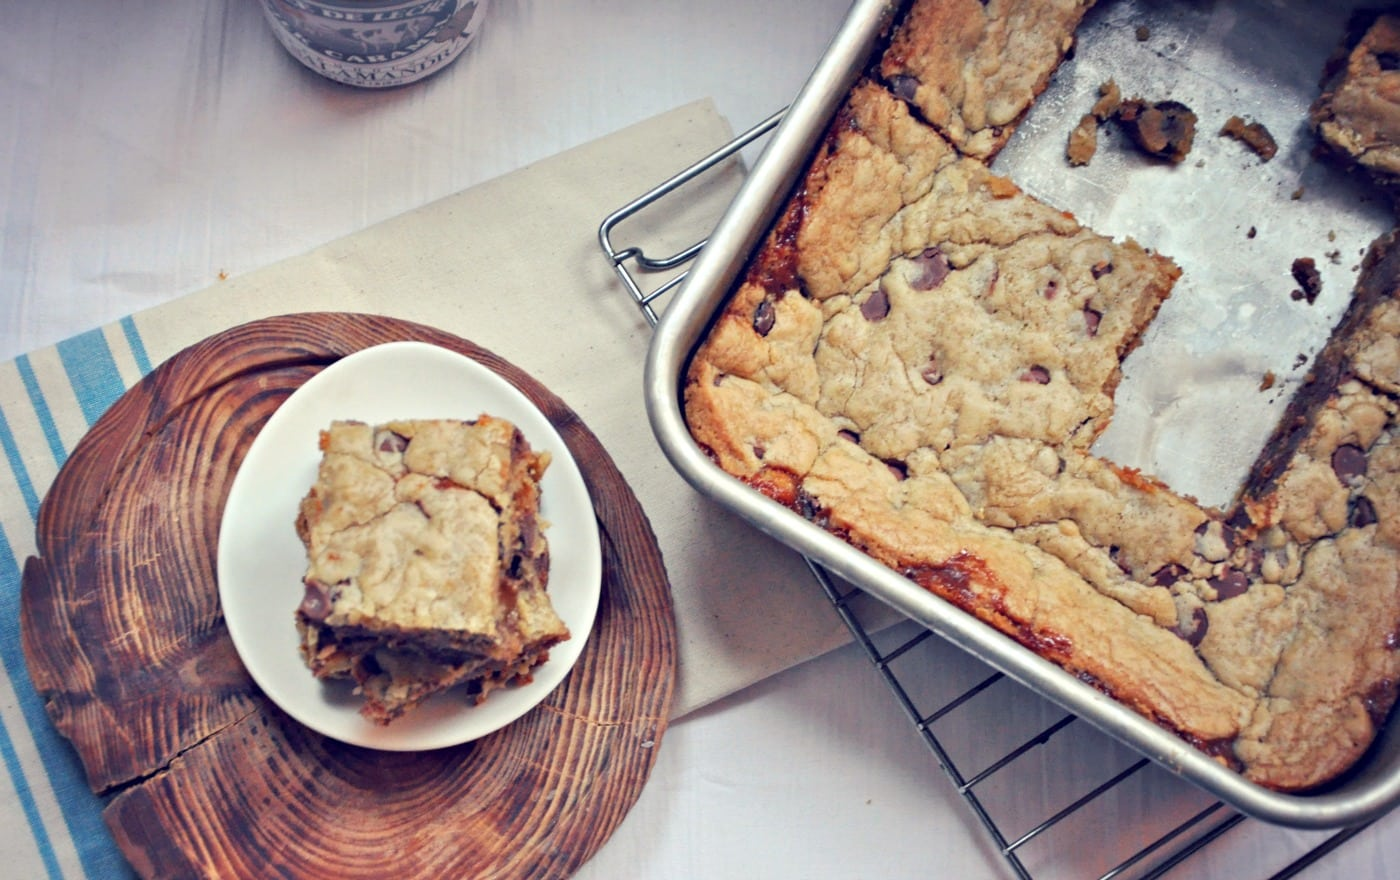 Chocolate Chip Cookie Bars With Salted Dulce De Leche By Kim Hamill